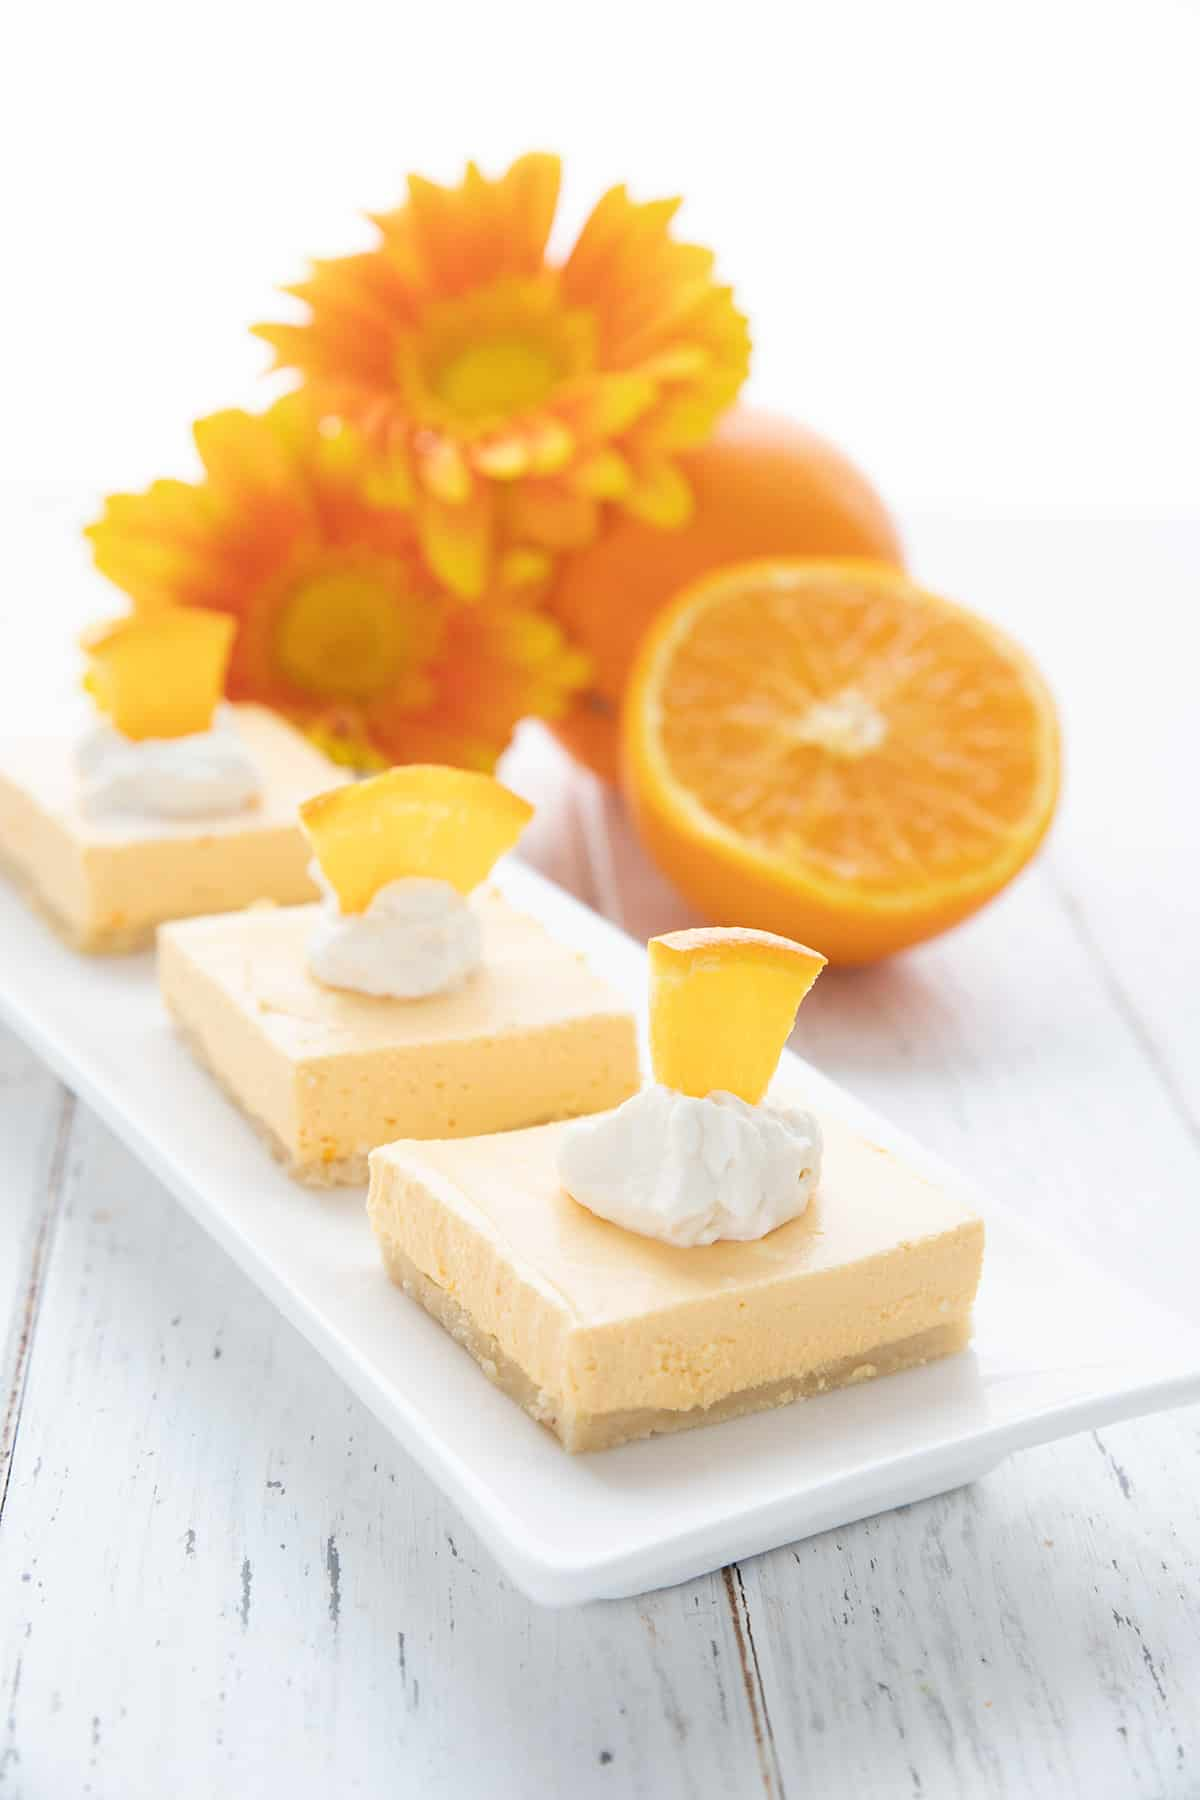 Three keto creamsicle bars on a long white try, topped with whipped cream and small slices of orange.